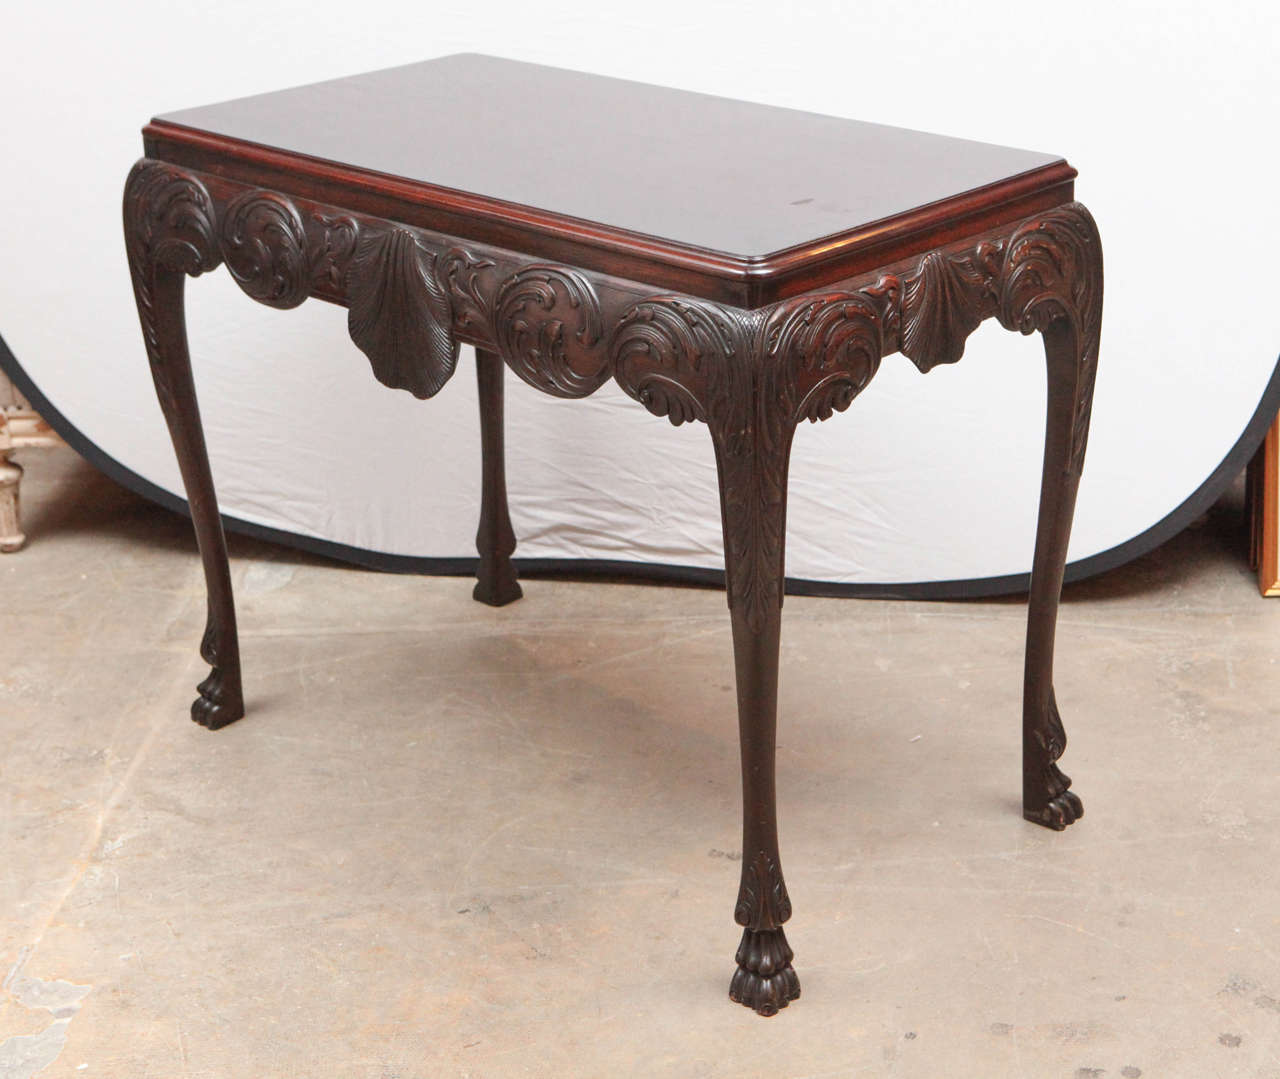 Late19th c. English Mahogany Console Table with Single Drawer and Shell Motif.  Can be used as Console, Center or Writing Table.